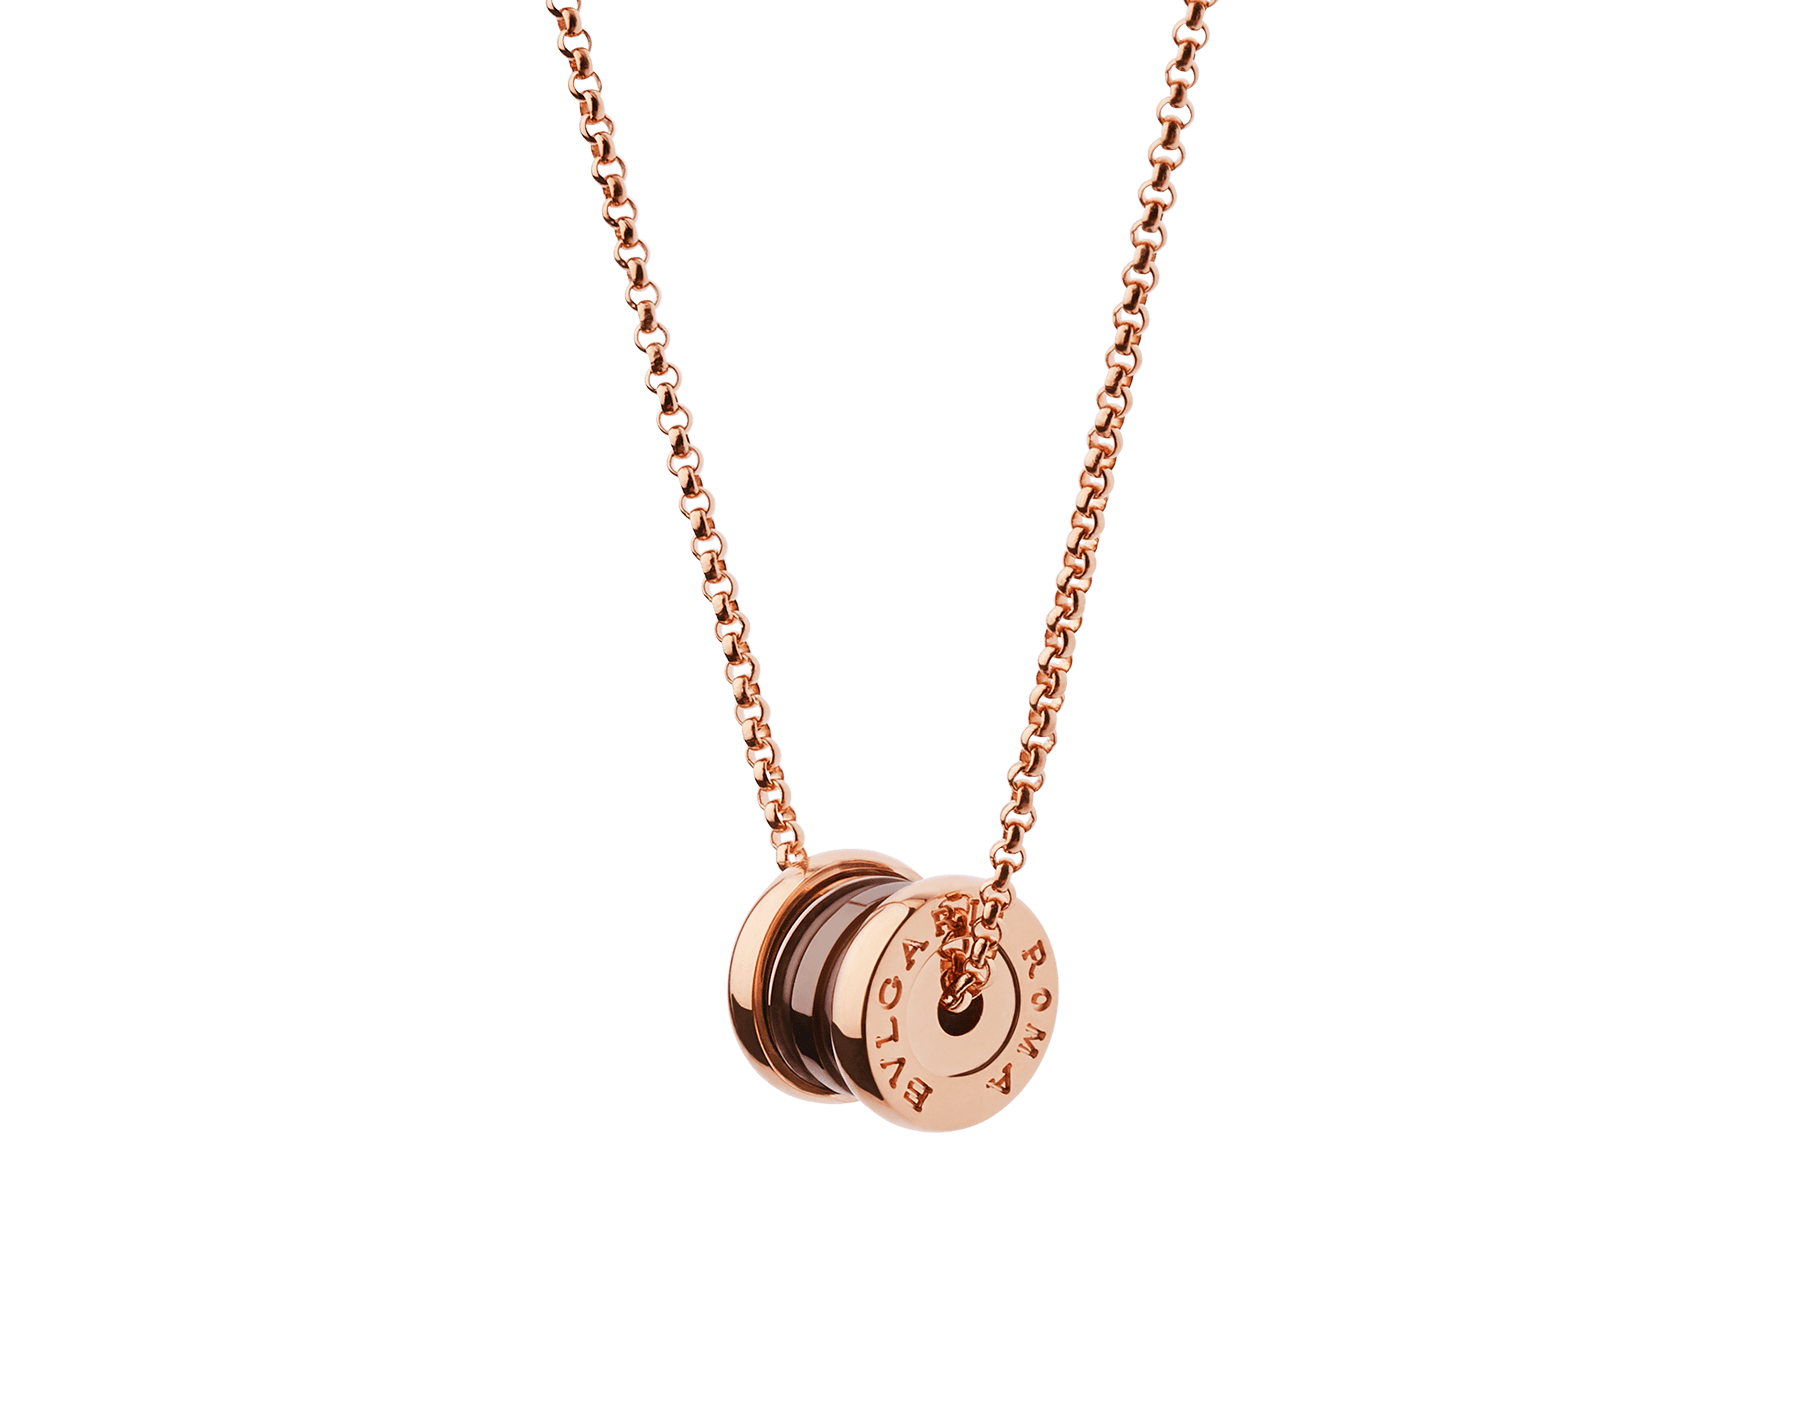 B.zero1 necklace with 18 kt rose gold chain and pendant in 18 kt rose gold and cermet. 358379 image 1